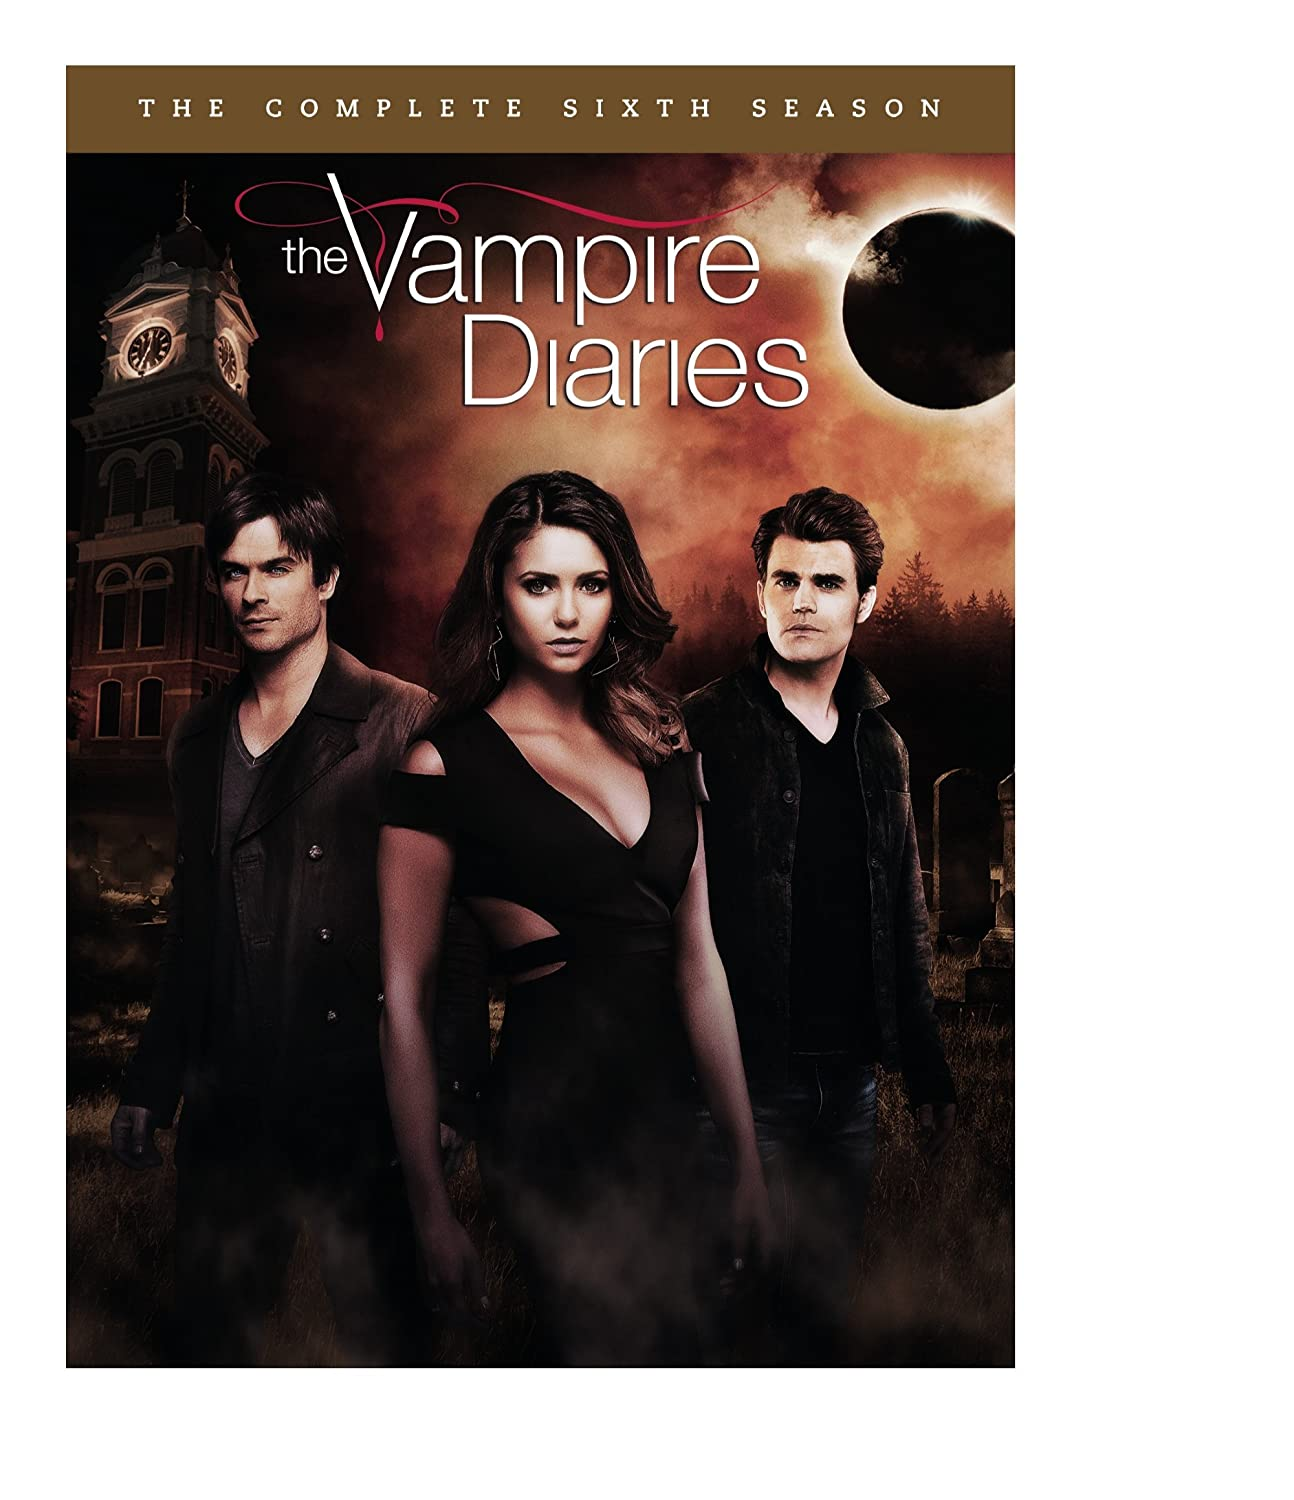 watch vampire diaries season 6 online for free without downloading